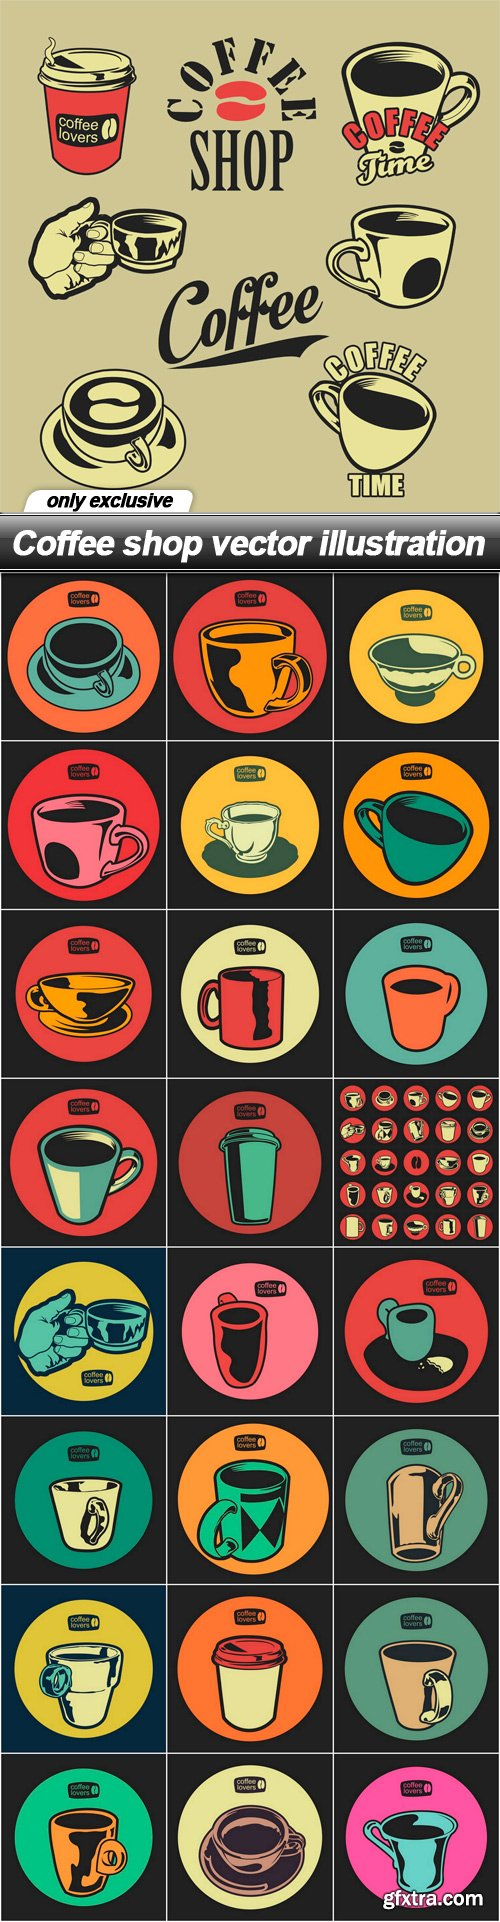 Coffee shop vector illustration - 25 EPS